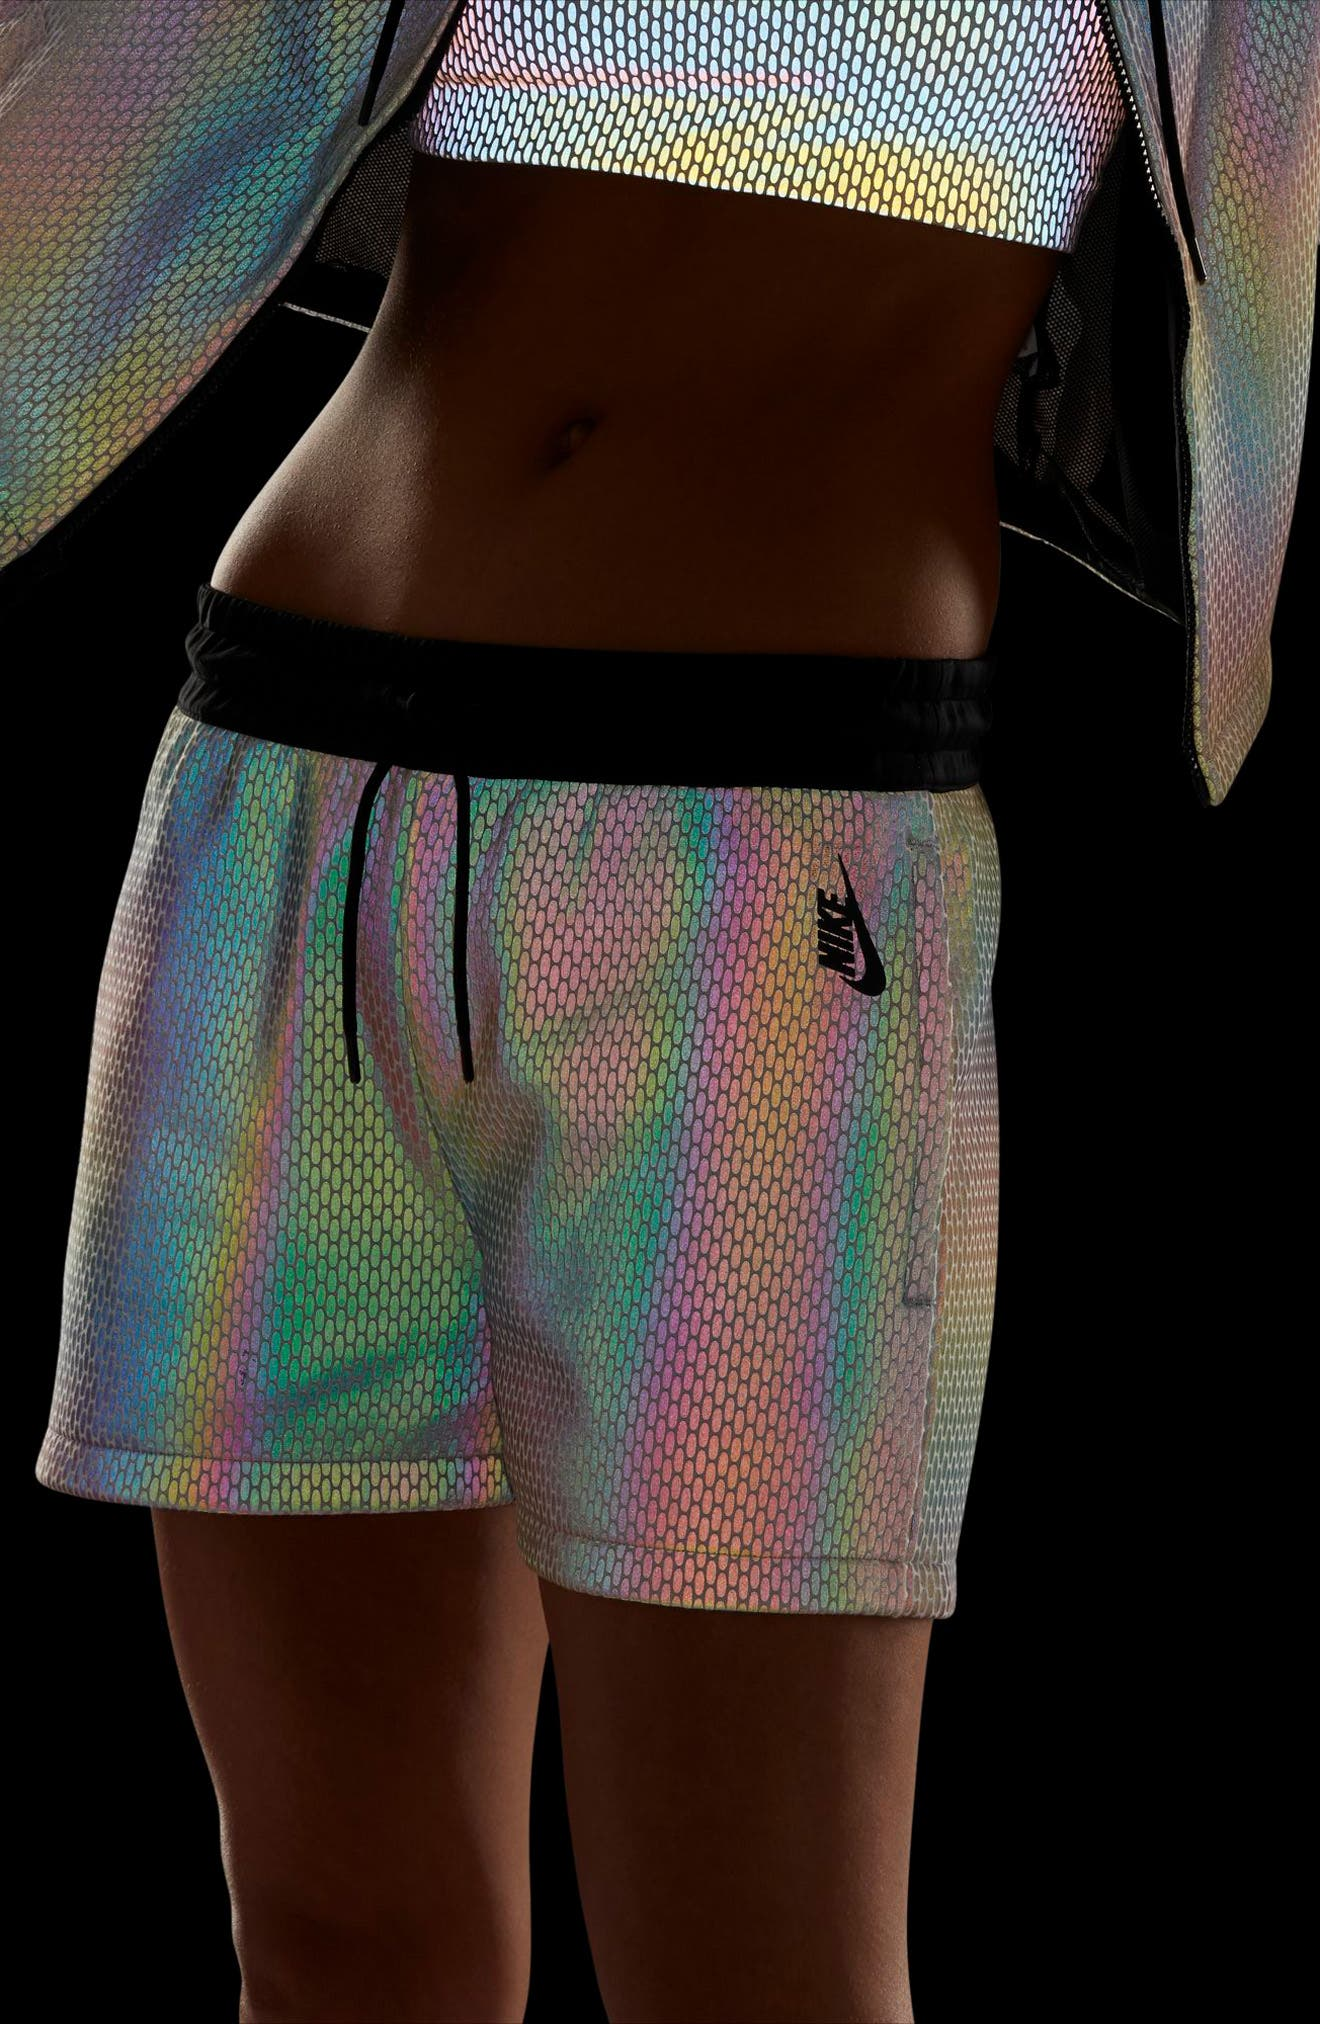 NikeLab Oil Slick Shorts,                             Alternate thumbnail 4, color,                             100